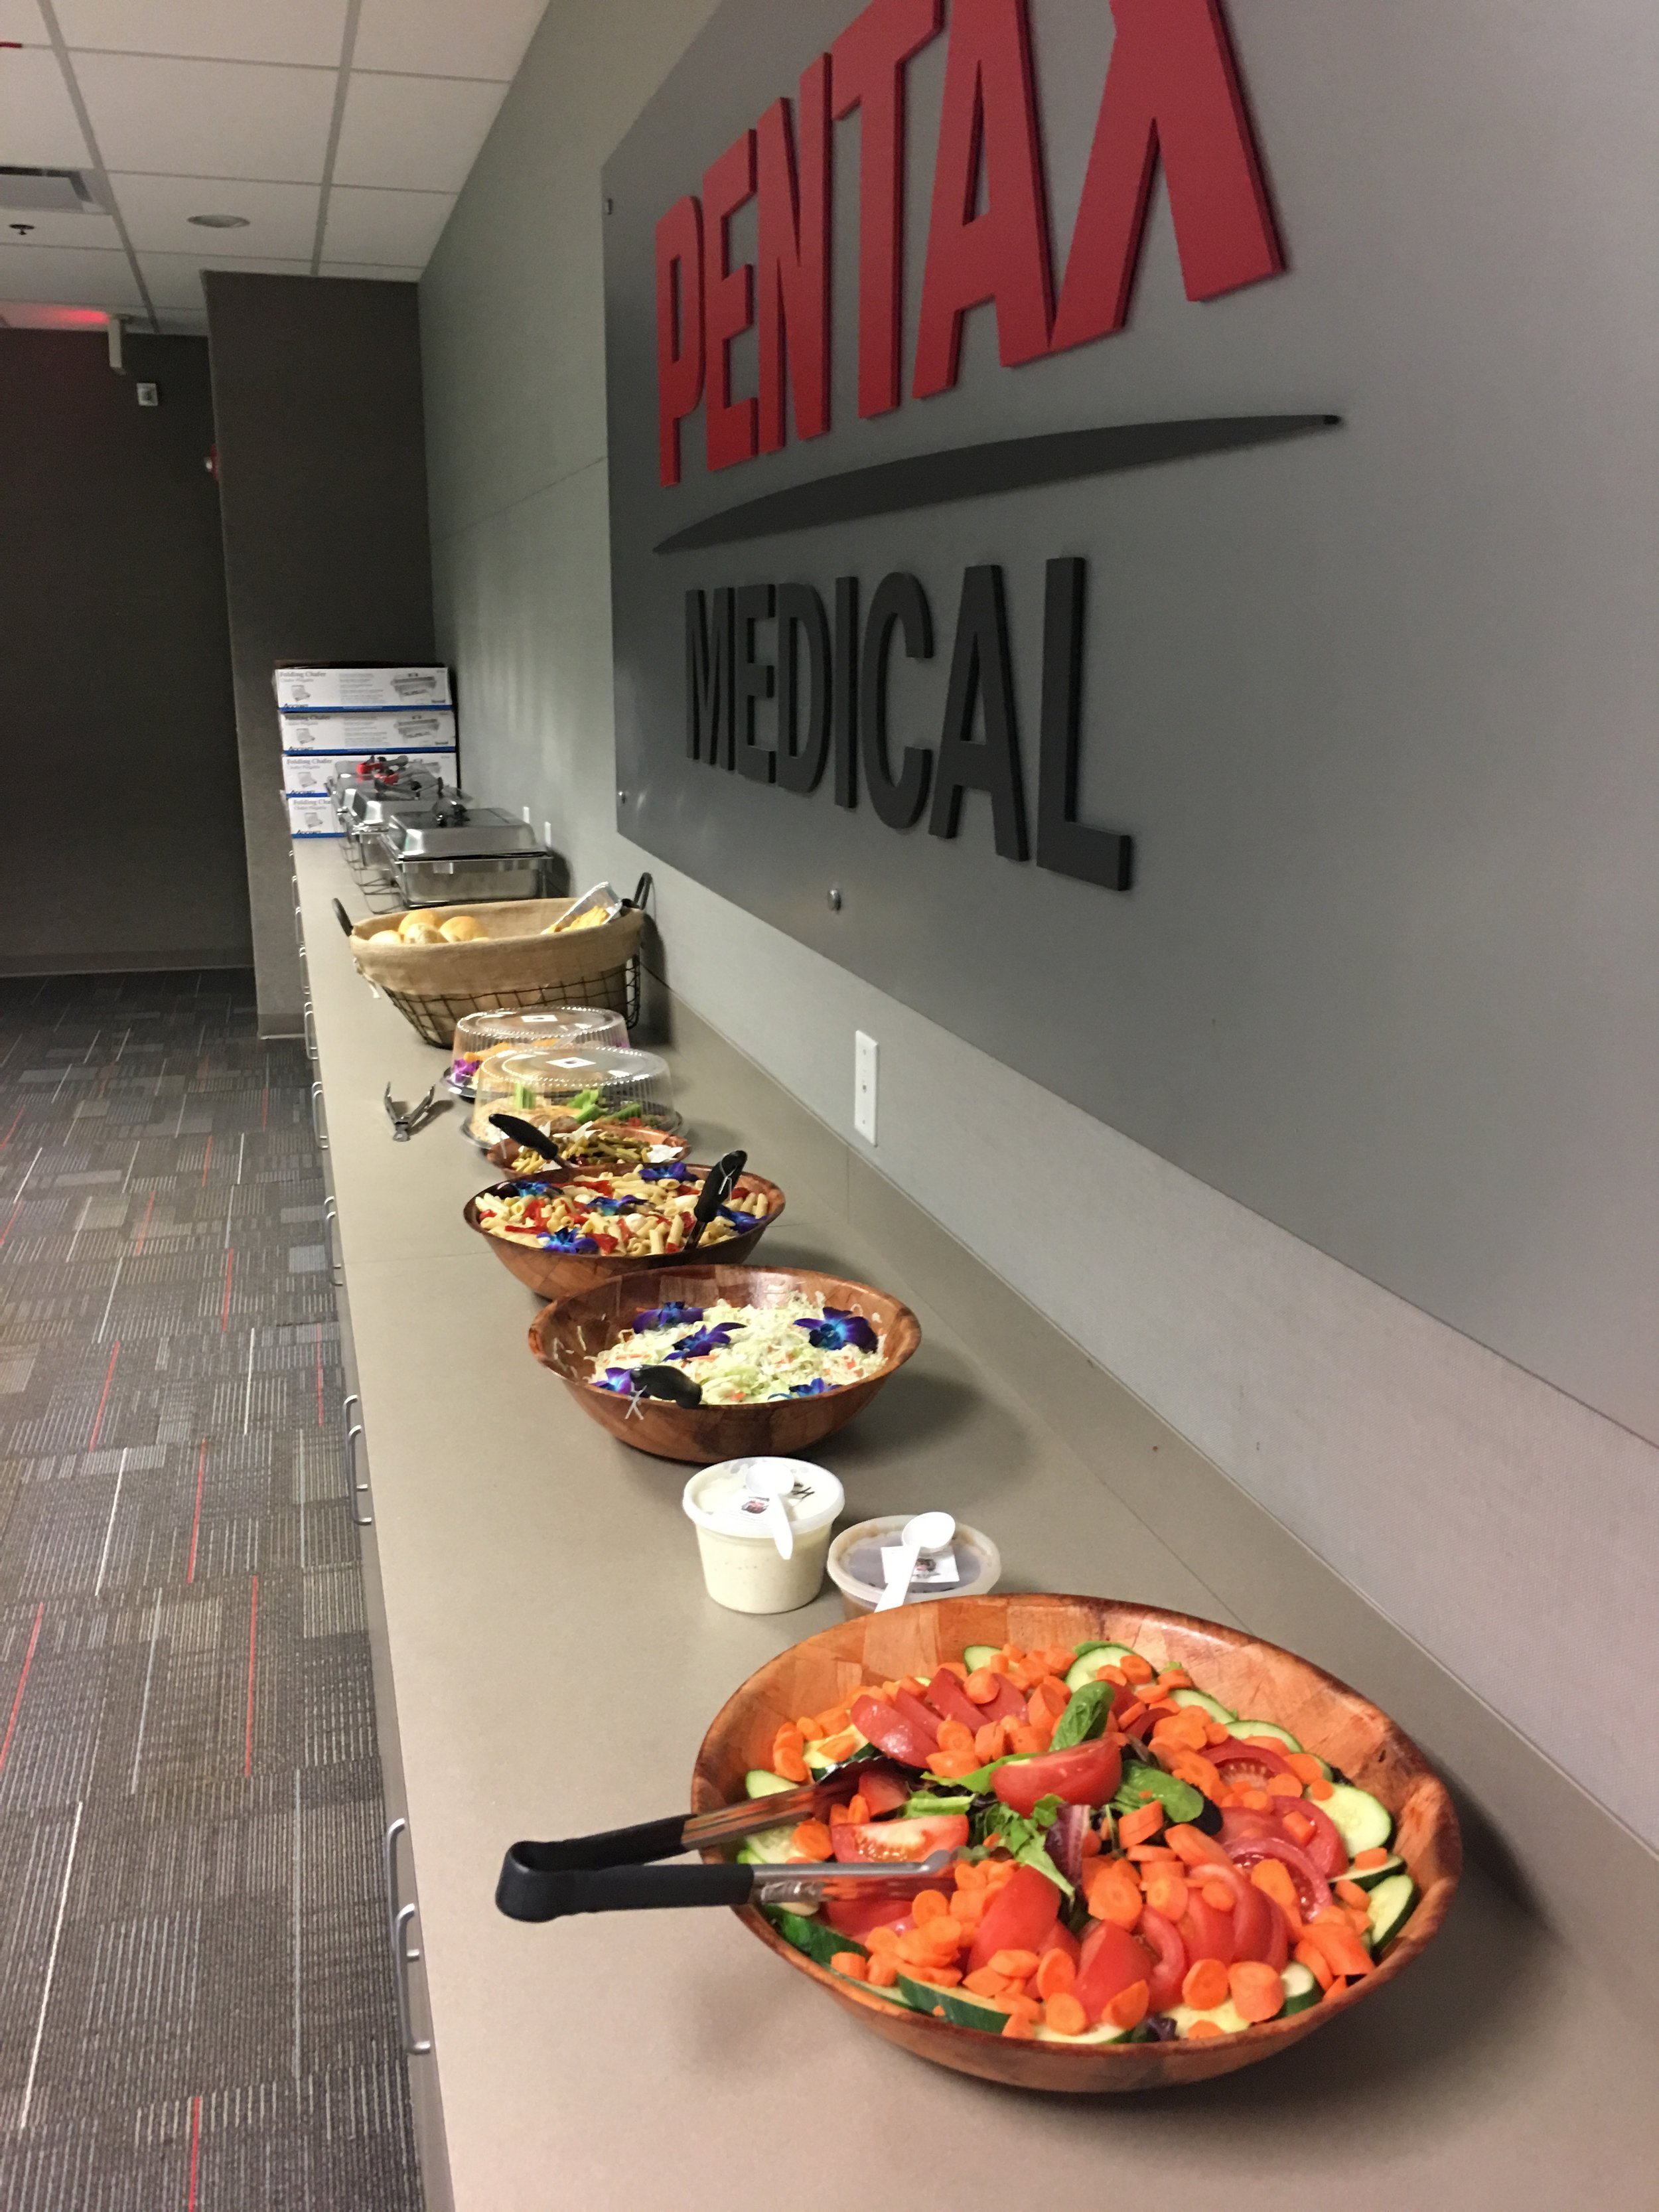 Corporate Catering - Our team is devoted to providing top quality food for doctors offices, meetings and corporate events. Our menu selection ranges from traditional American and Italian cuisine to Asian stir-fry and dumplings. Customized menu options are available for all orders.View Sample Corporate Catering Menus